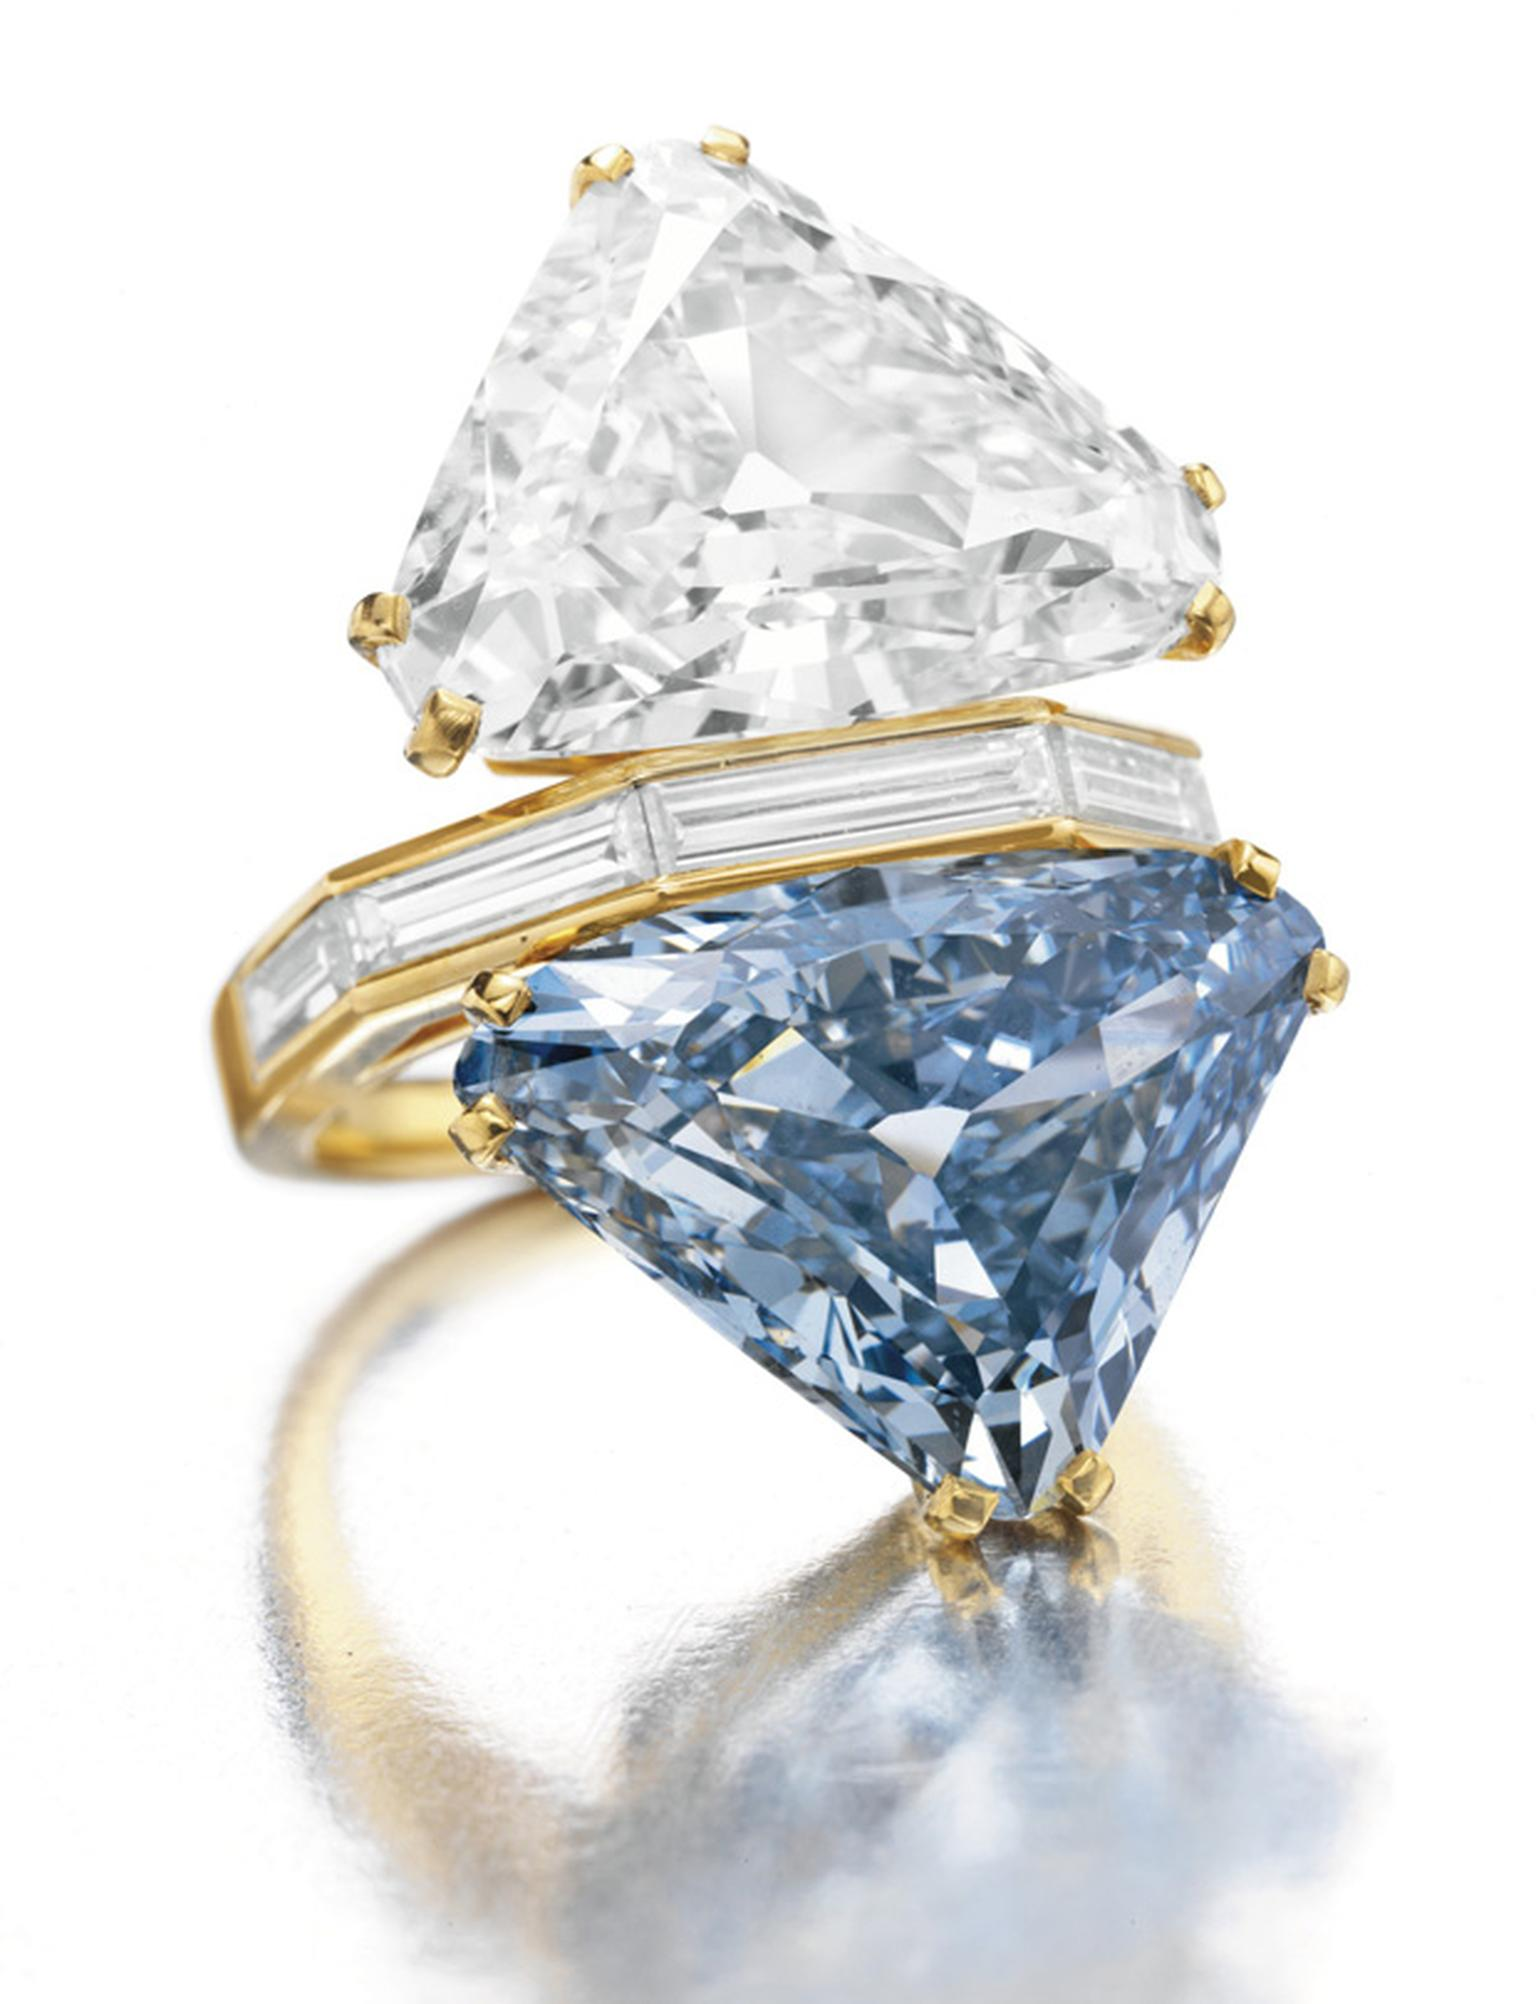 The Bulgari Blue diamond in its  1970-era setting achieved $15,762,500